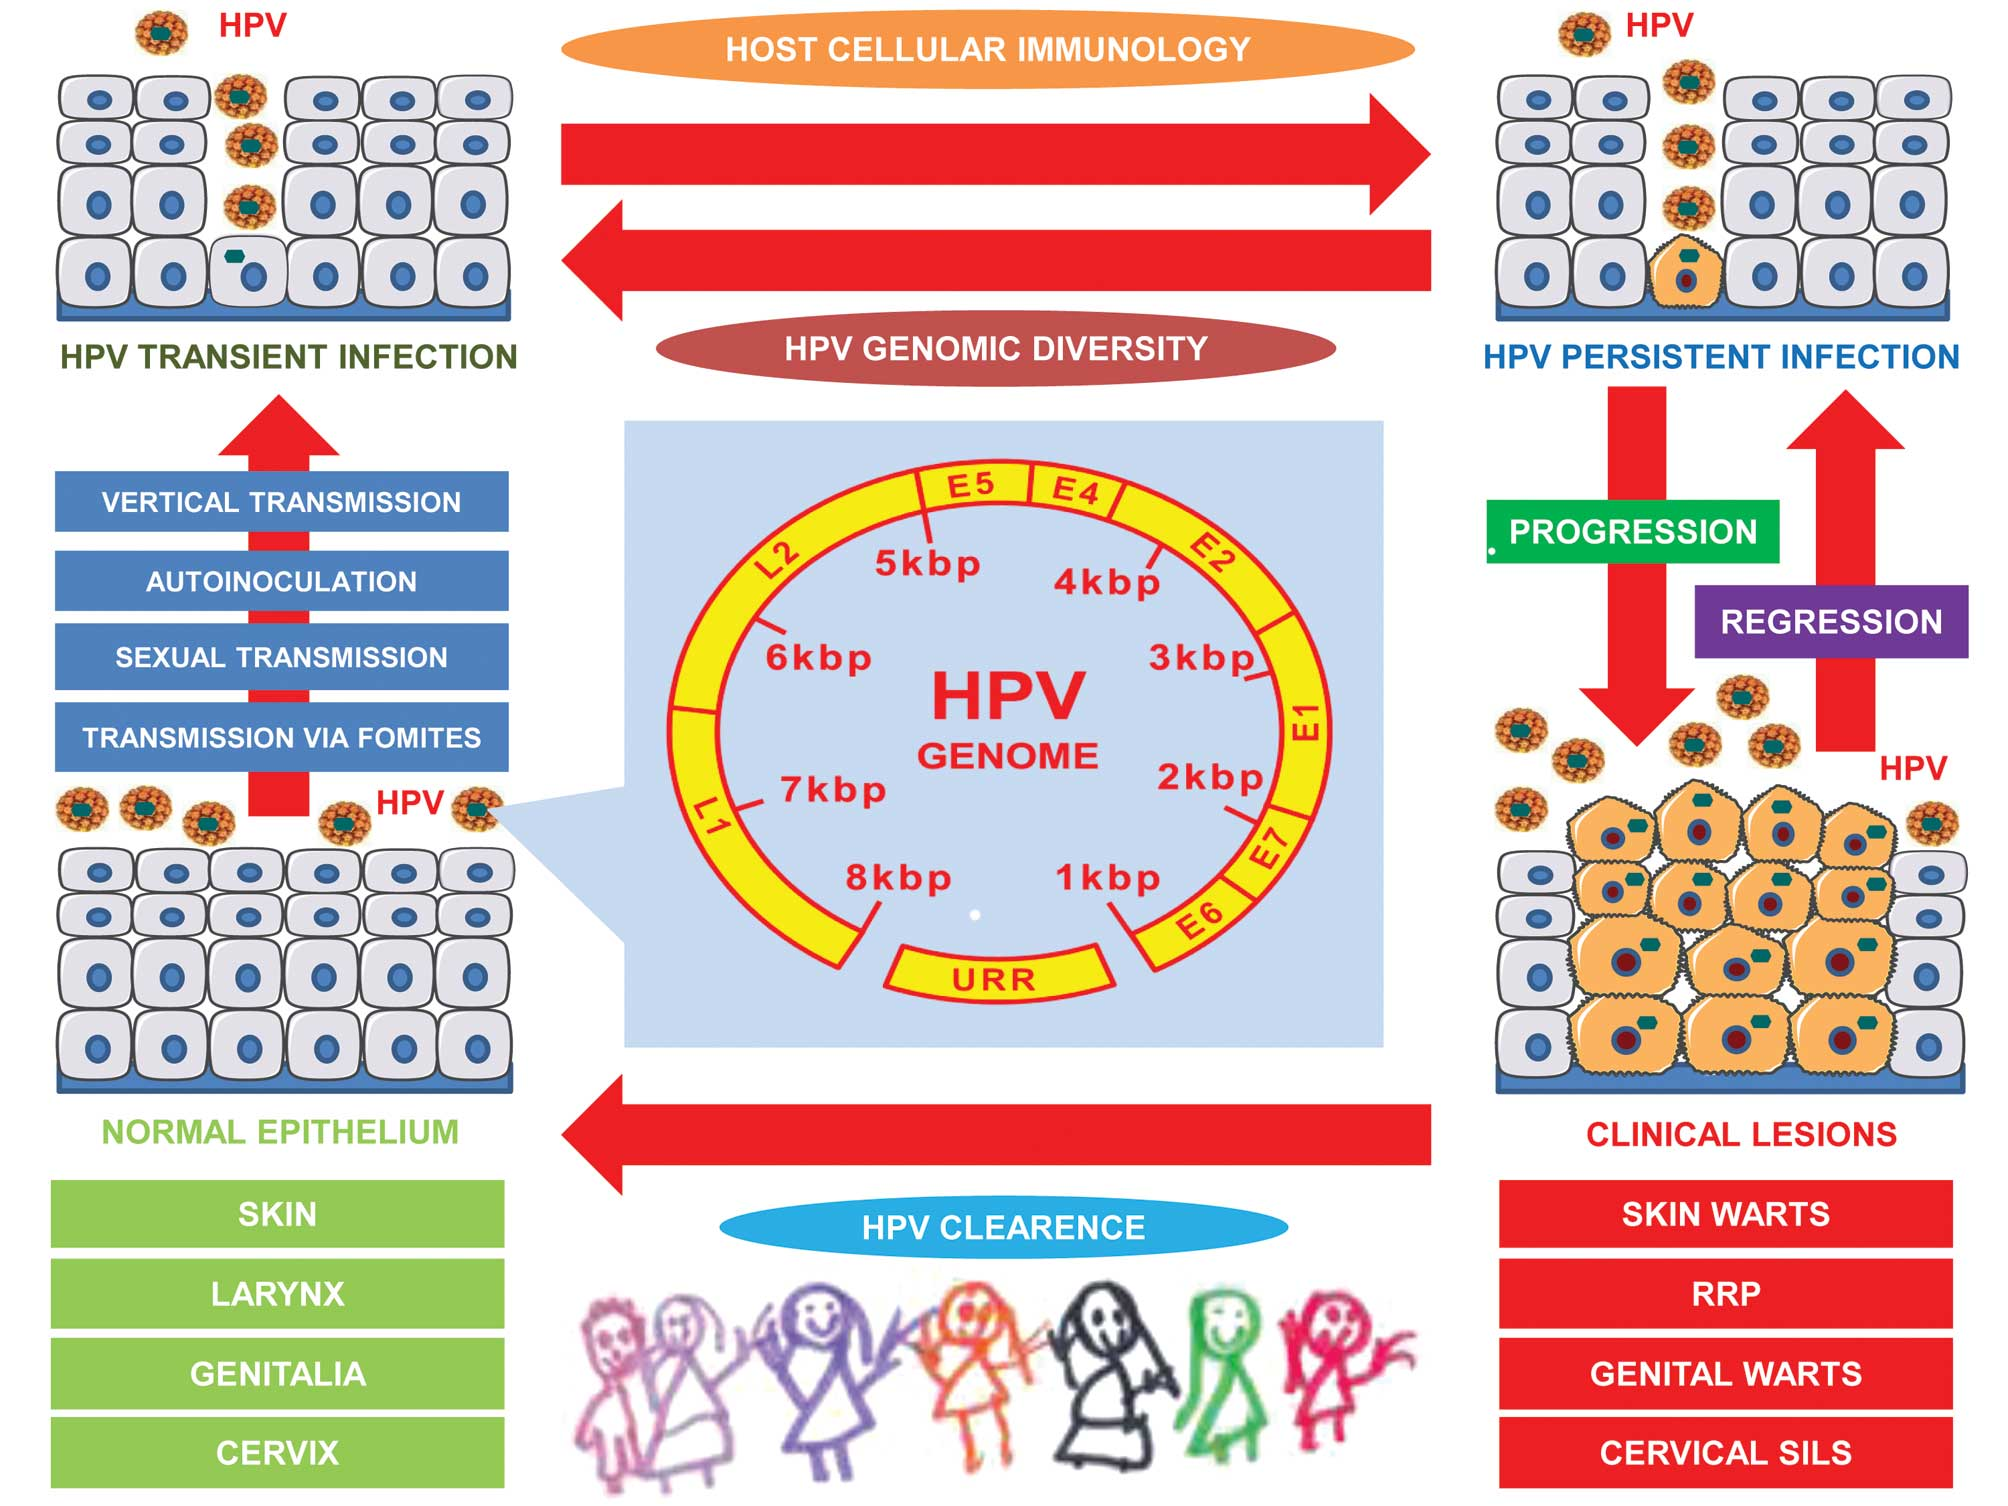 human papillomavirus in infants transmission prevalence and persistence)